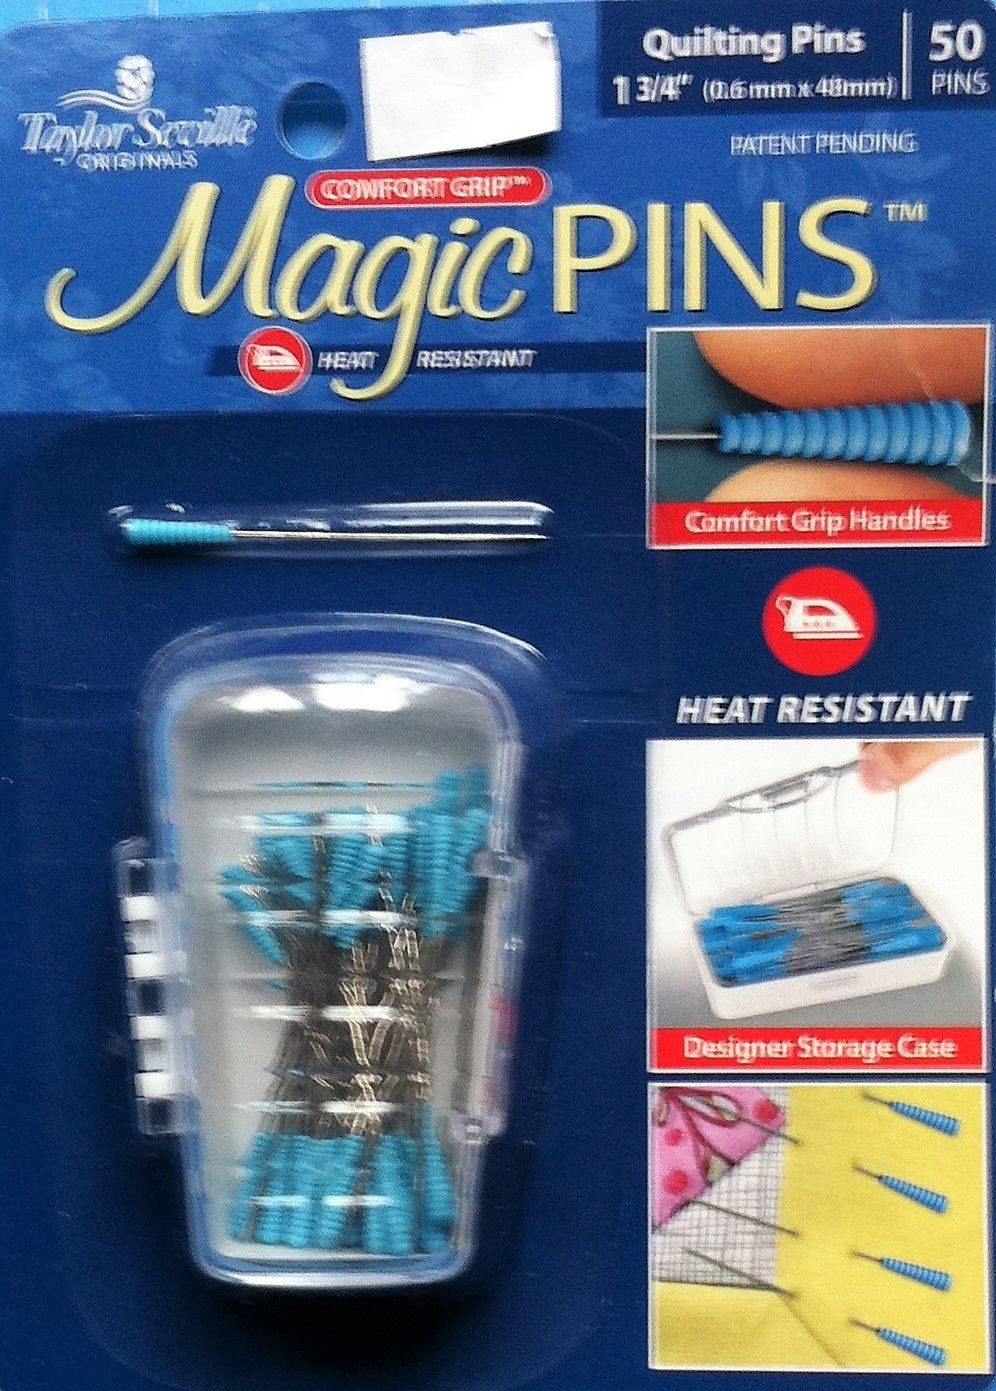 Magic pins for quilting 1 3/4